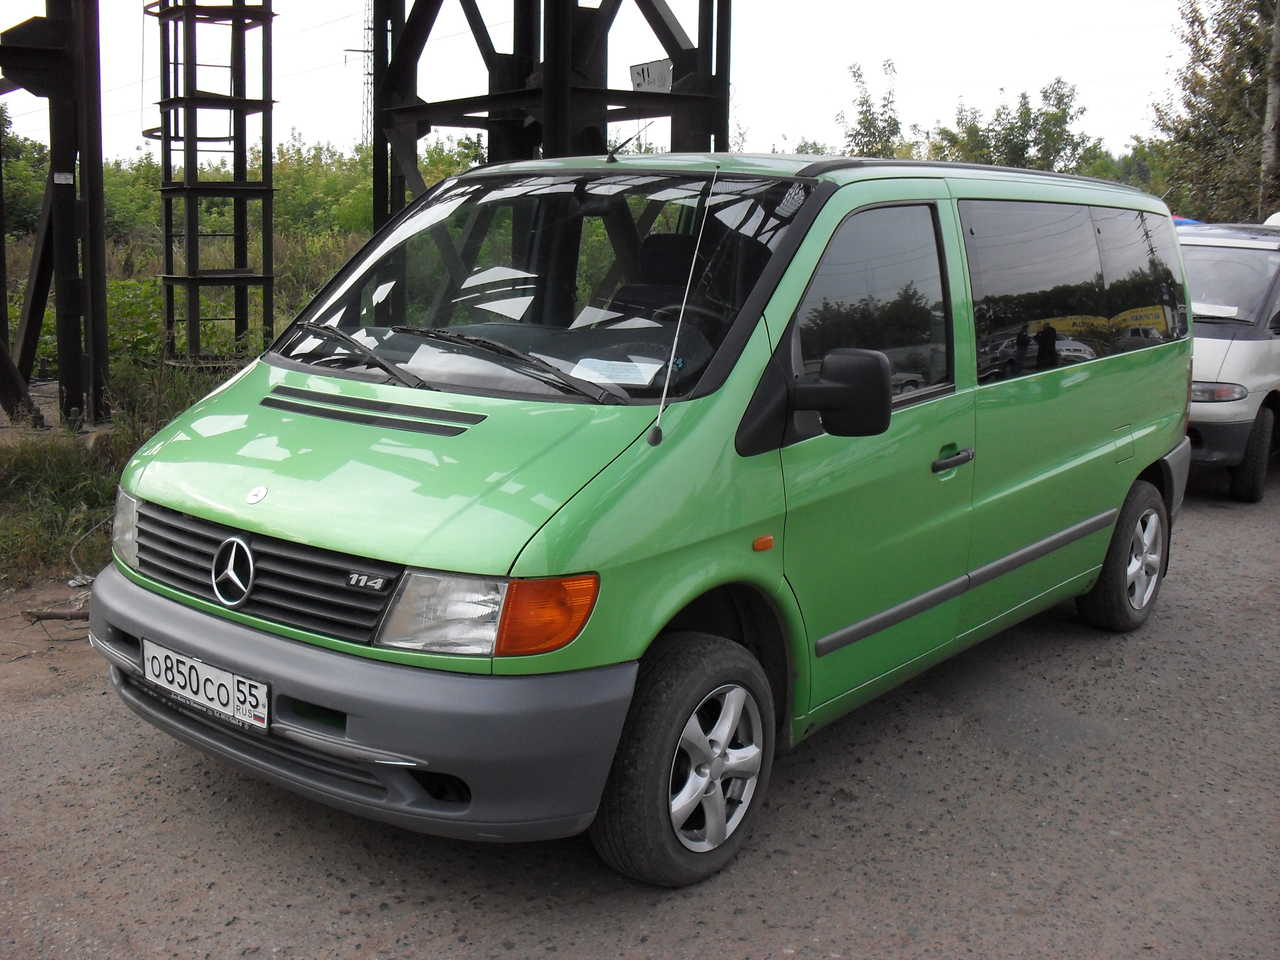 Mercedes viano brabus for sale for Mercedes benz viano for sale